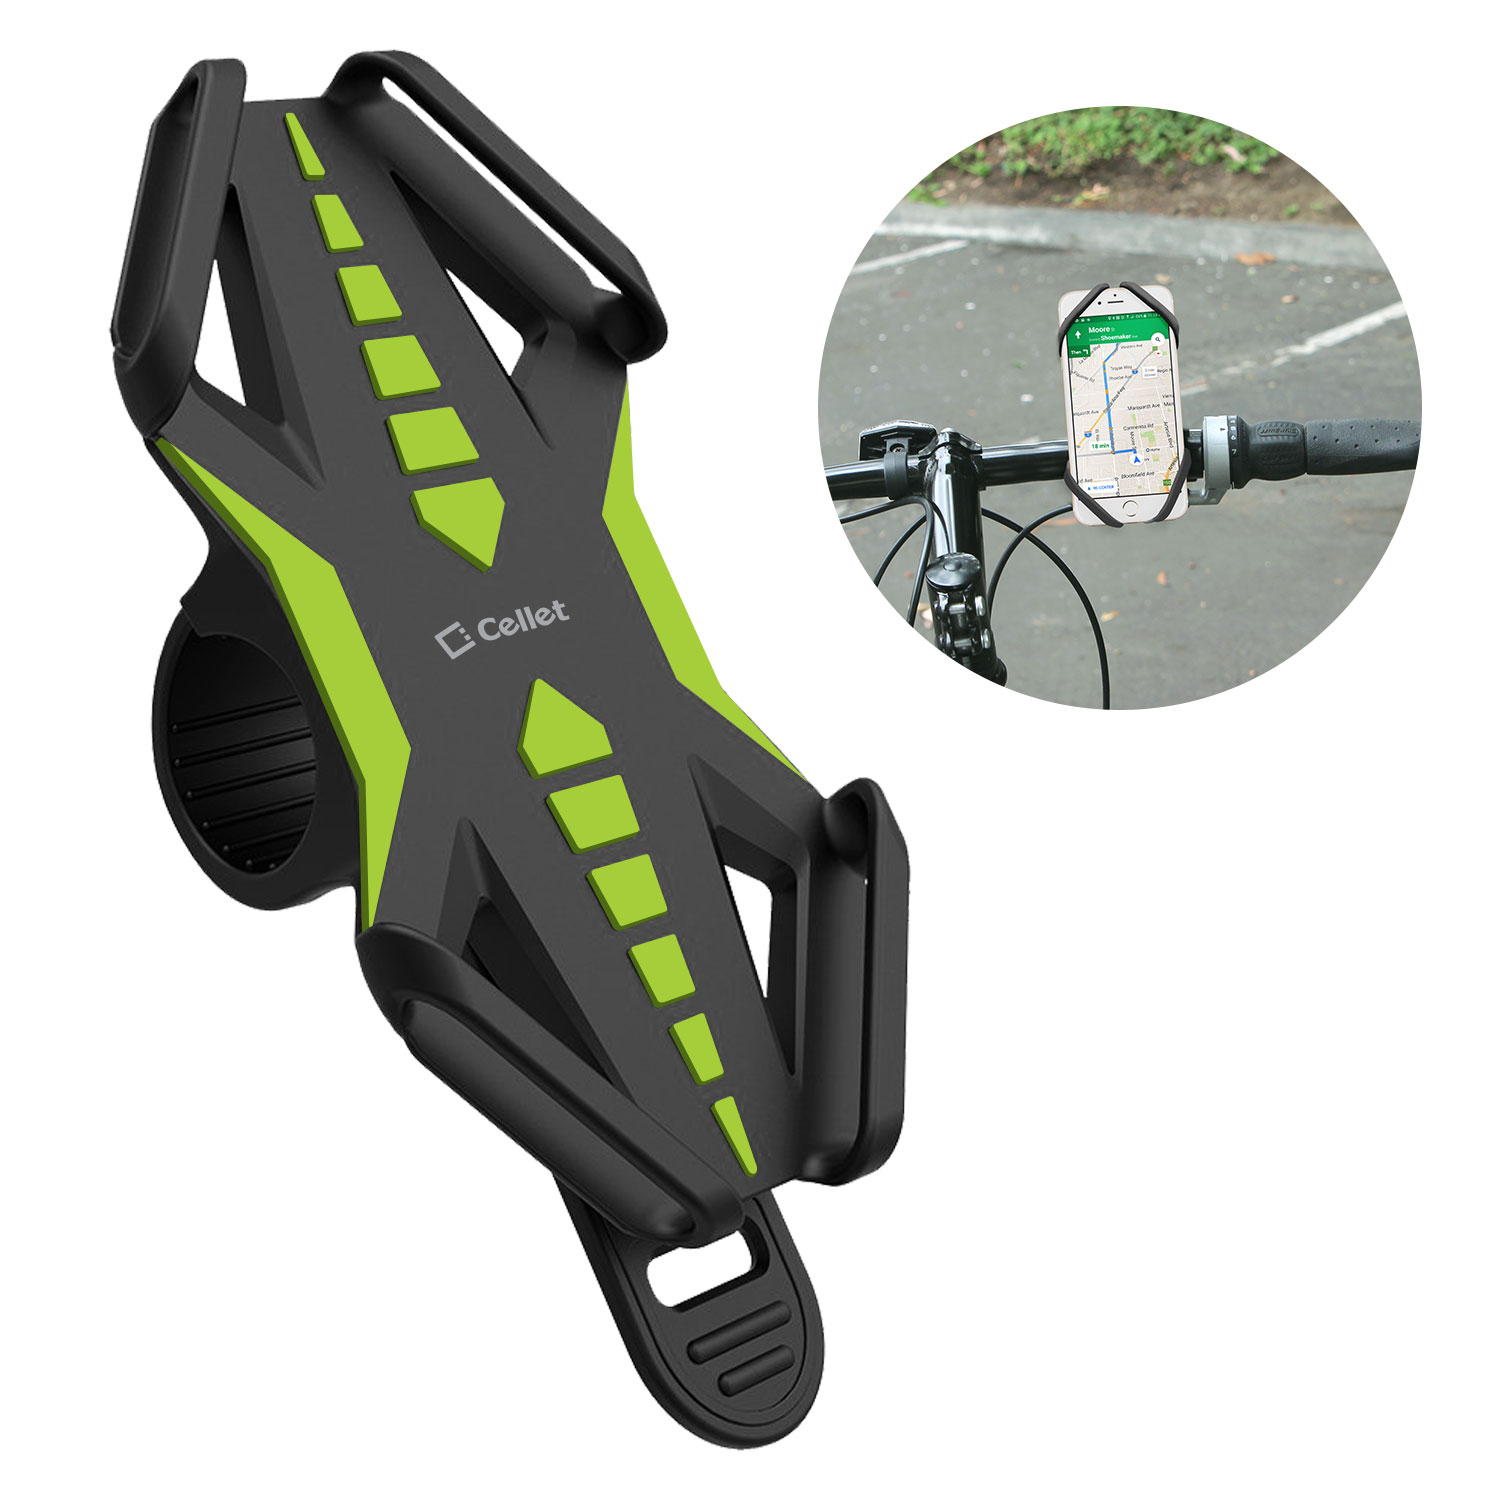 Sony Xperia Z Bike Phone Mount Silicone Green